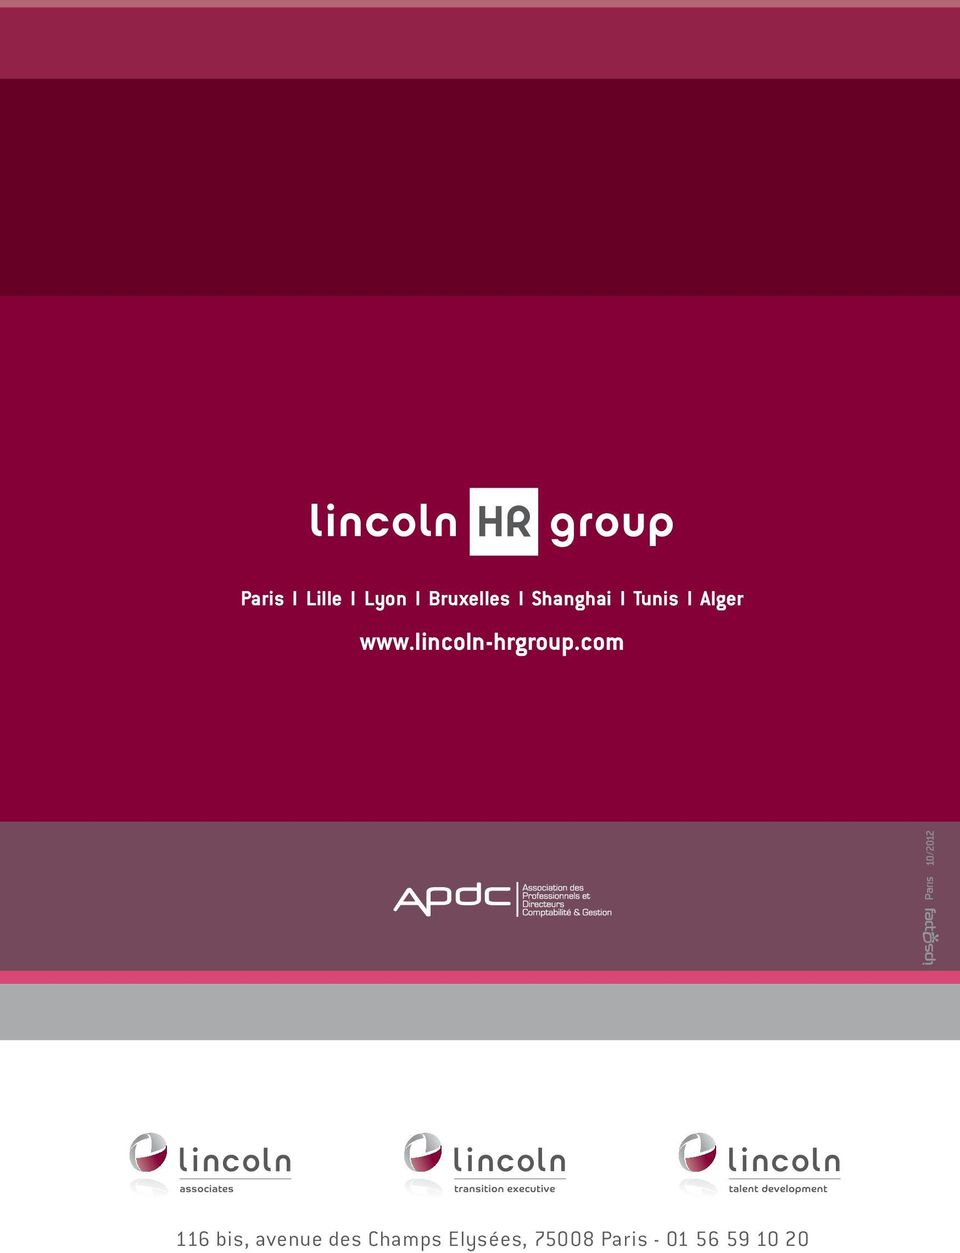 lincoln-hrgroup.